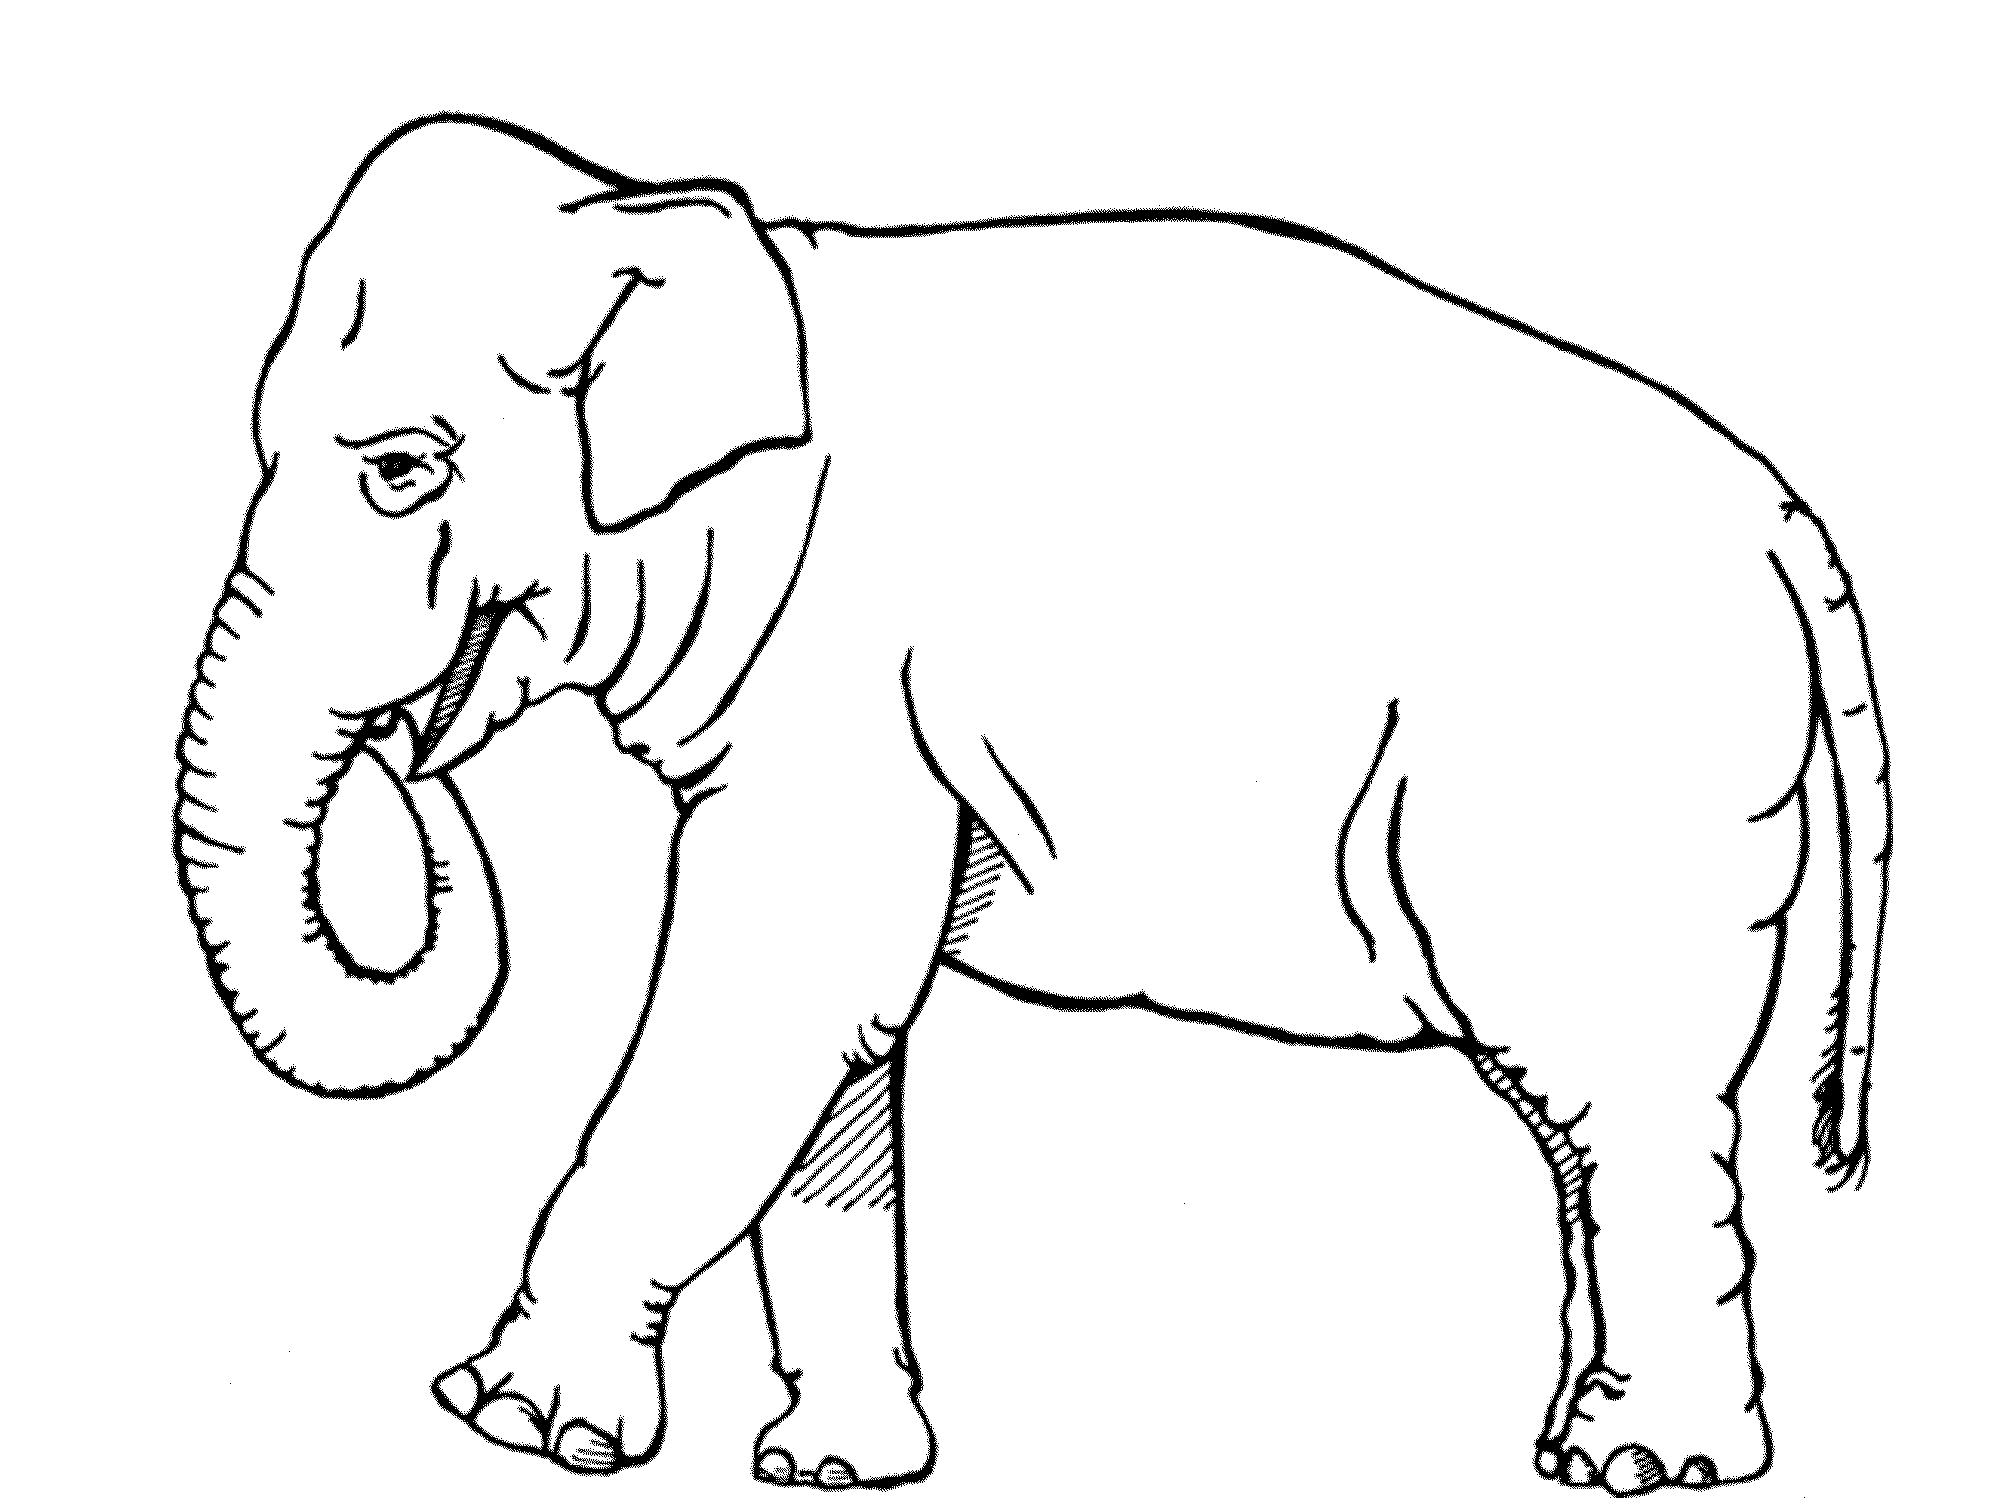 coloring book elephant images free easy to print elephant coloring pages tulamama book images elephant coloring